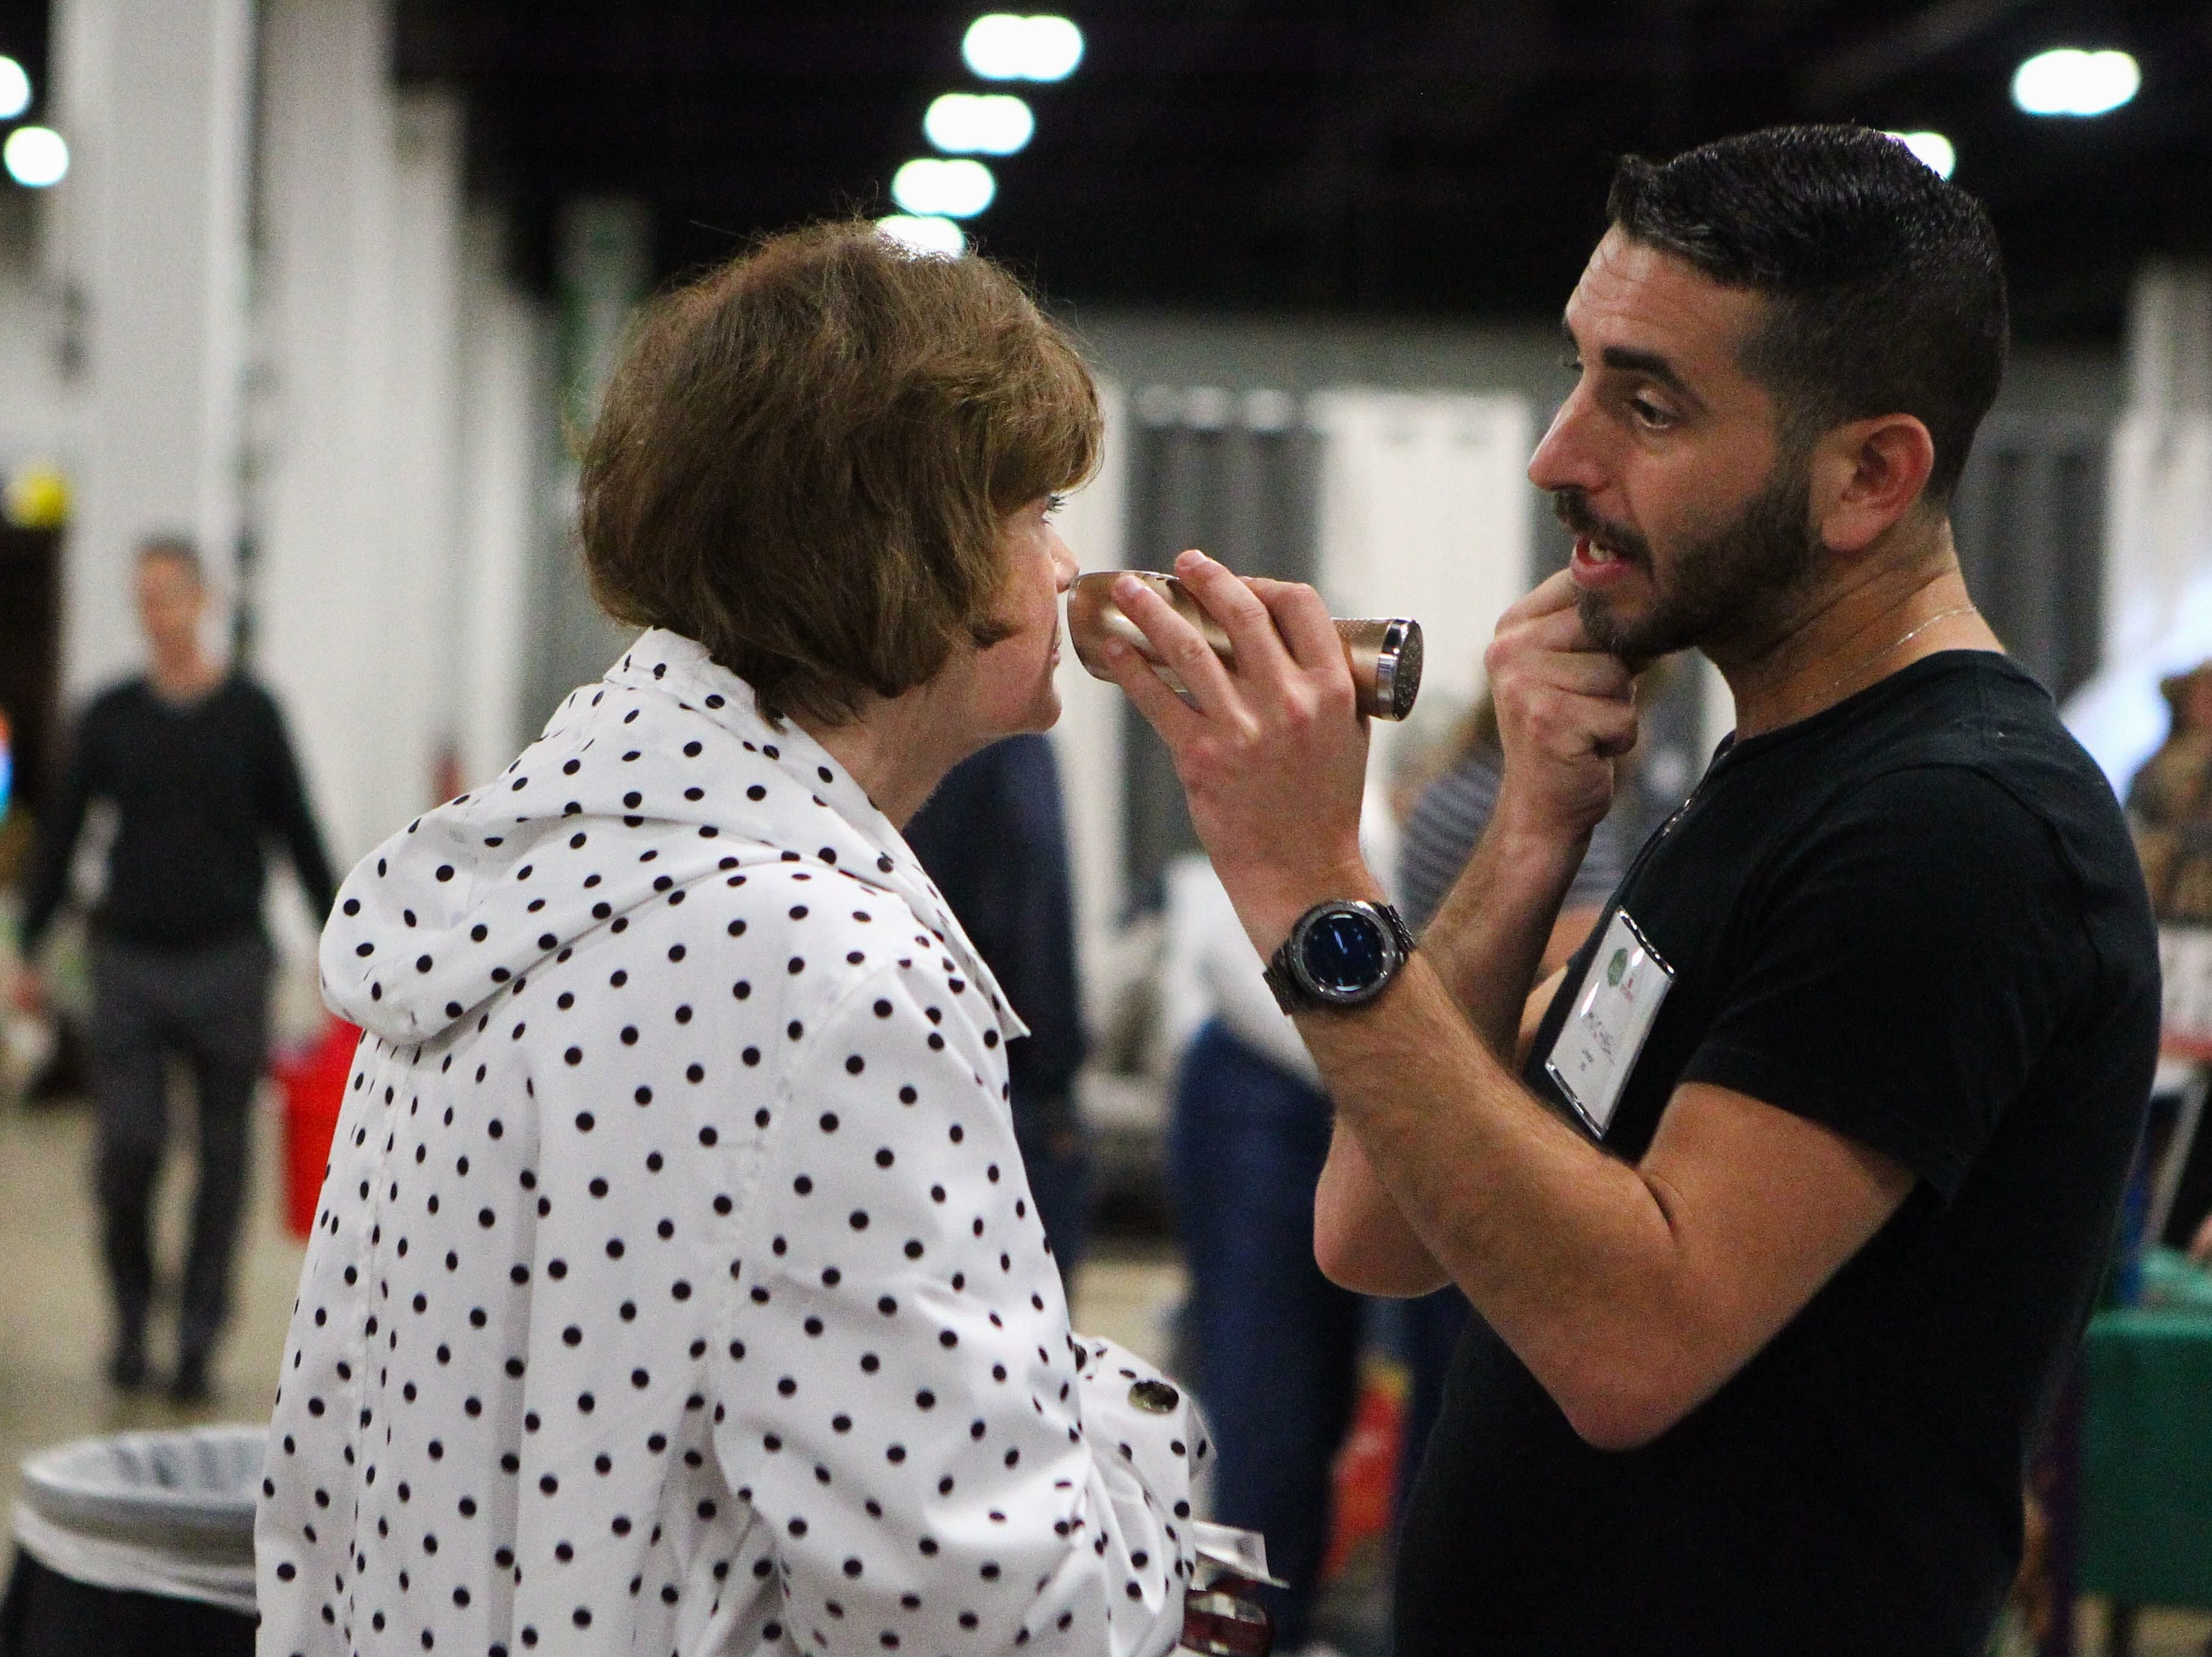 La Parfait Cosmetics showcase their product at the Southern Home and Garden Show at the Greenville Convention Center on Friday, March 1, 2019.